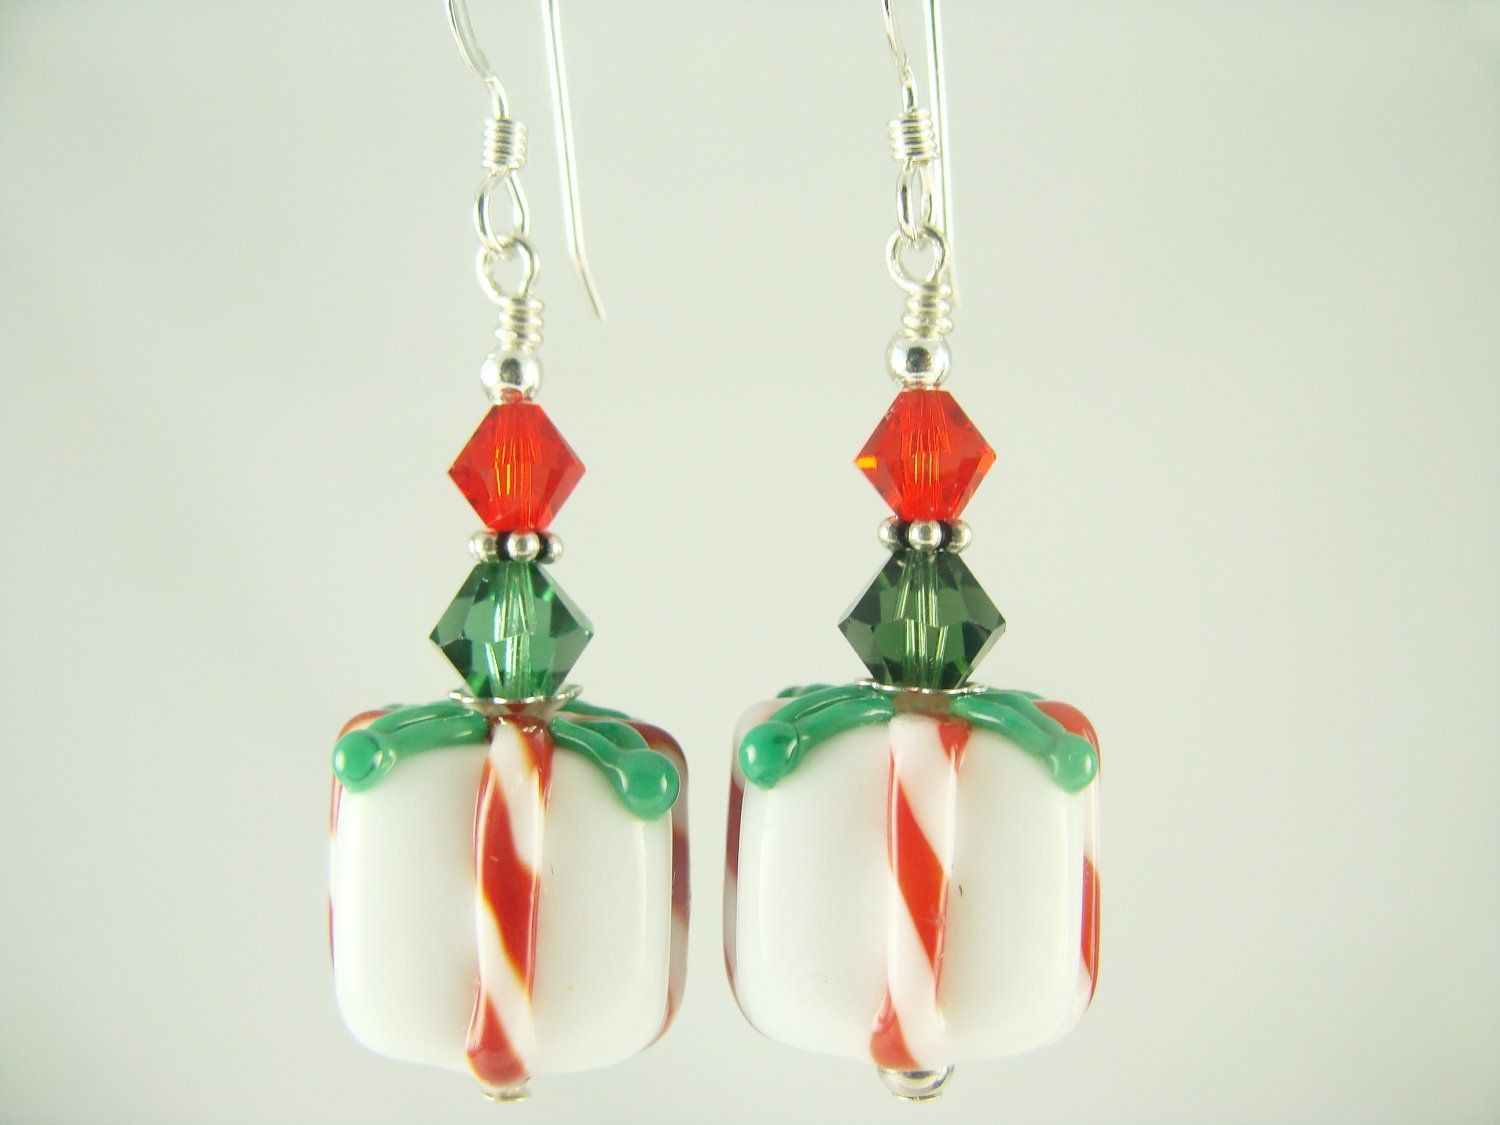 Hand Made Candy Cane And Christmas Themed Earrings By Jadjus Jewelry   Custommade